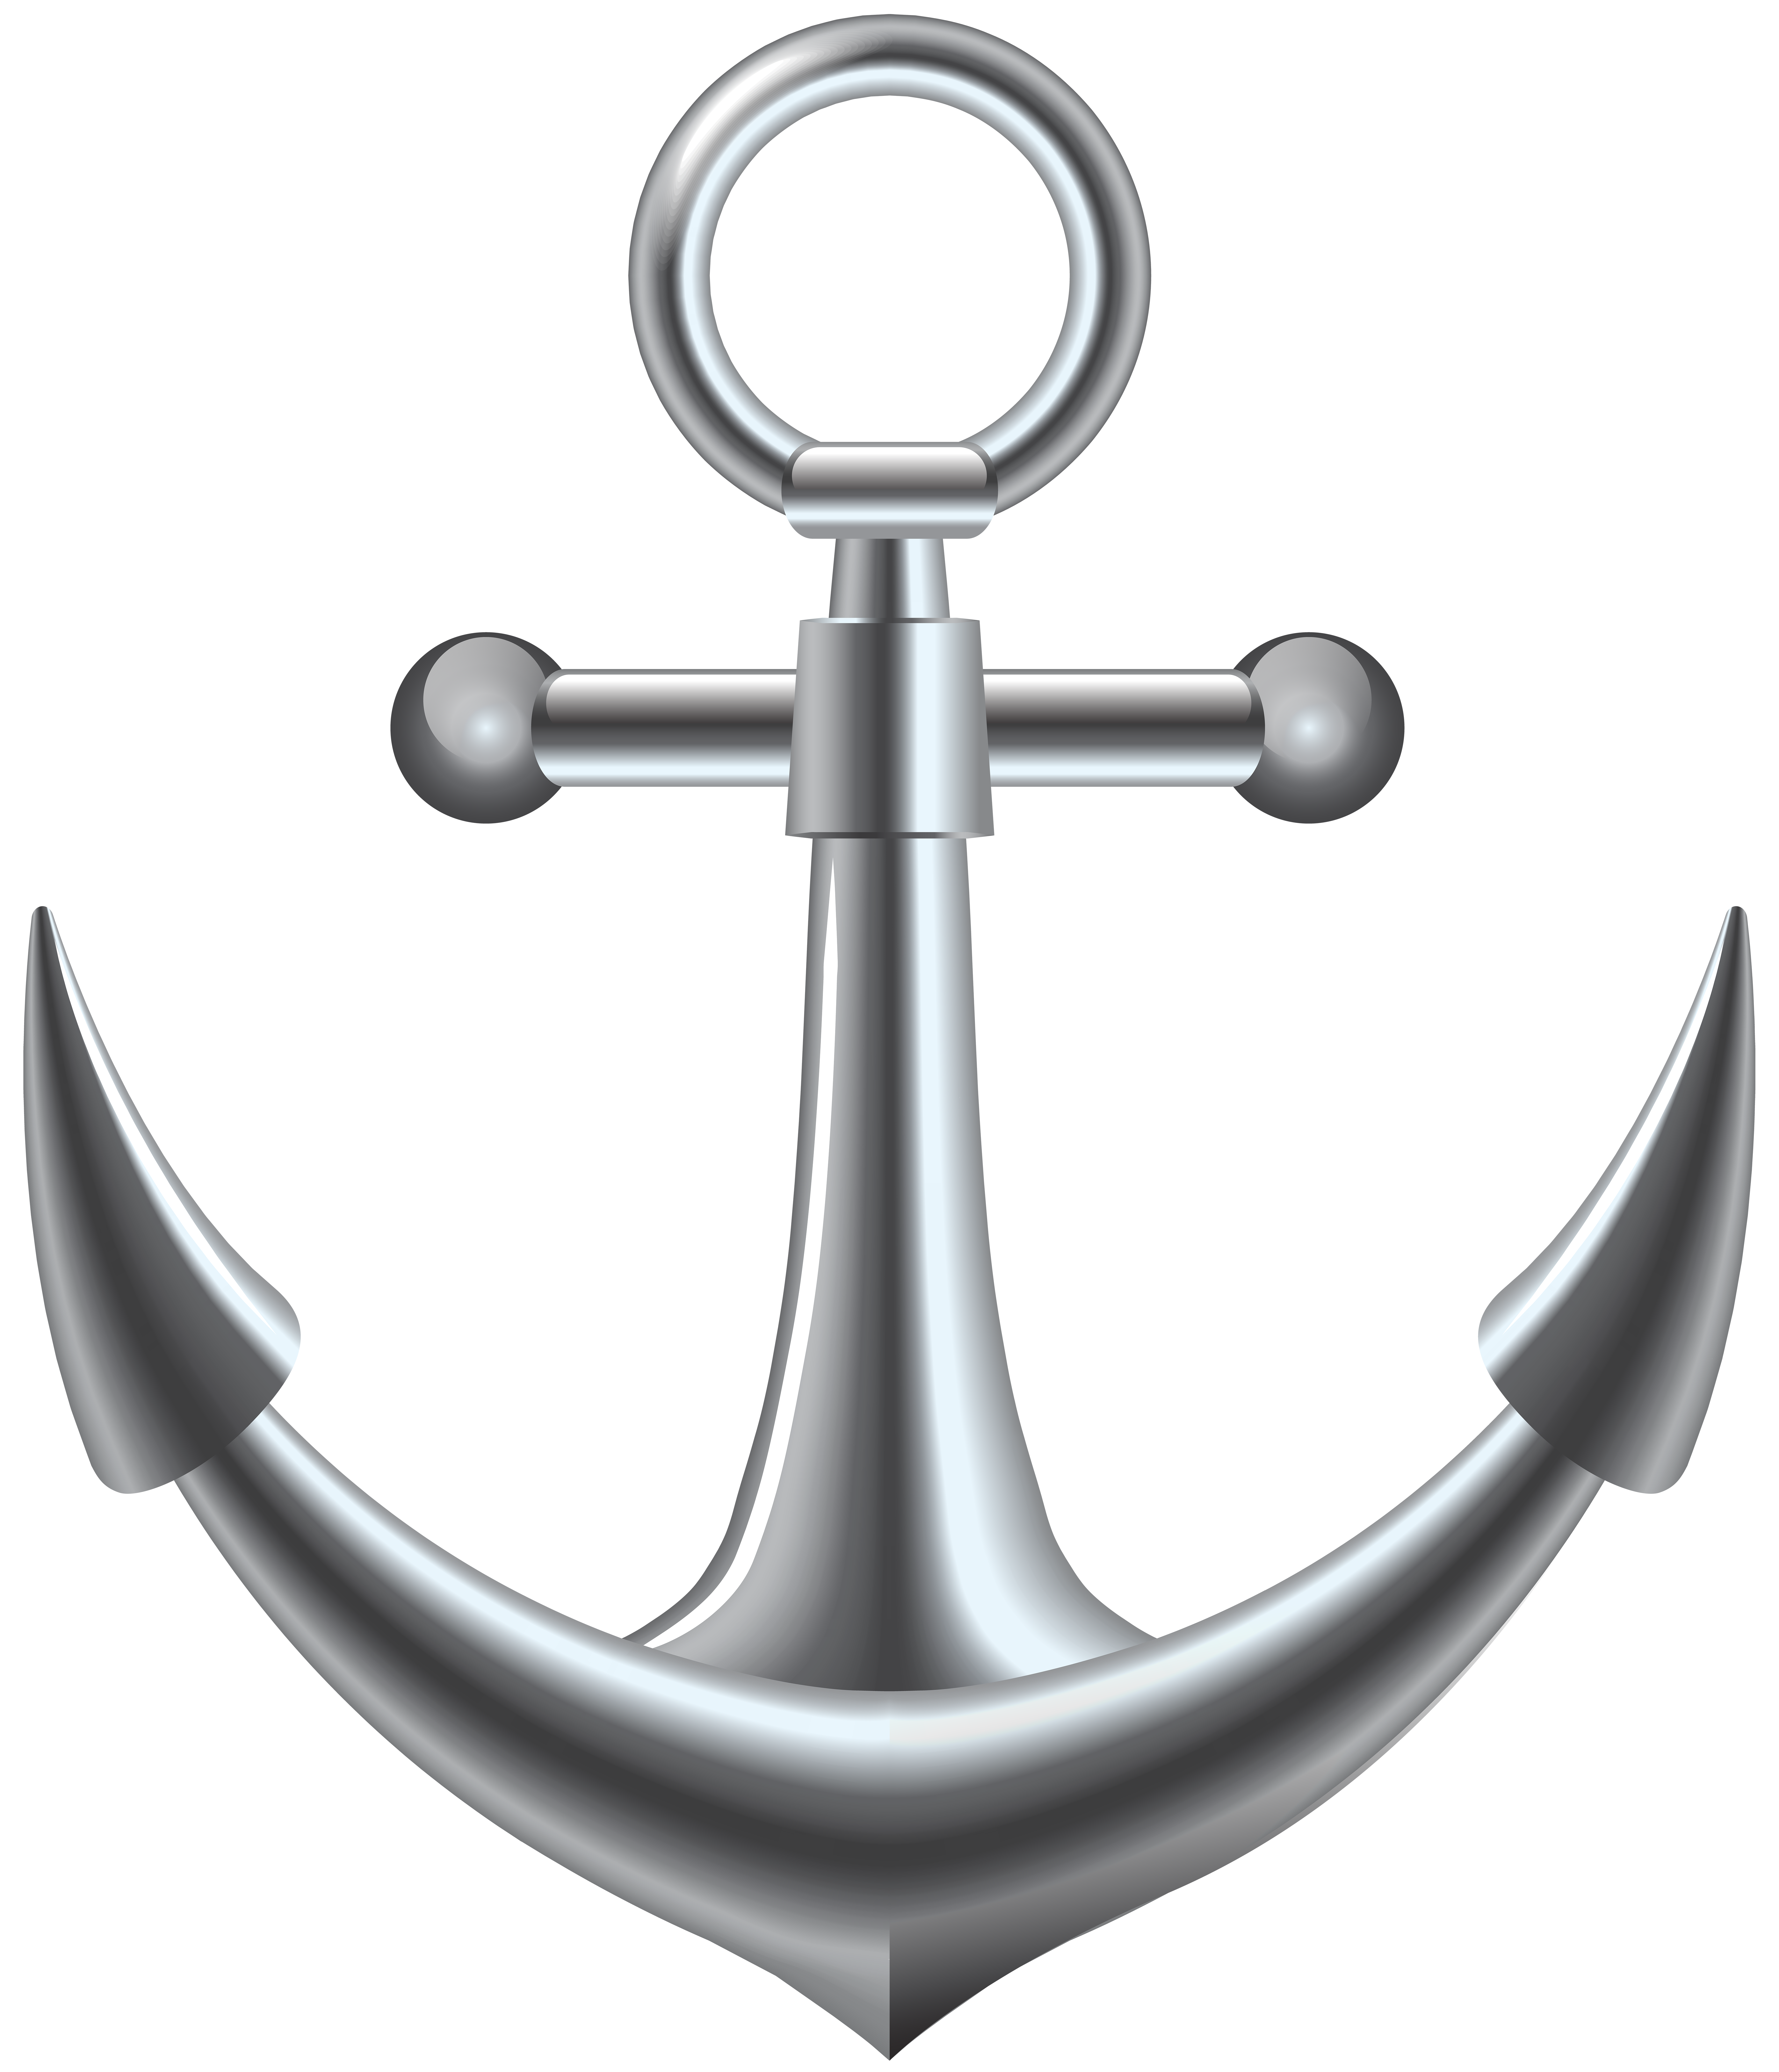 Clipart anchor bow clipart. Png clip art image